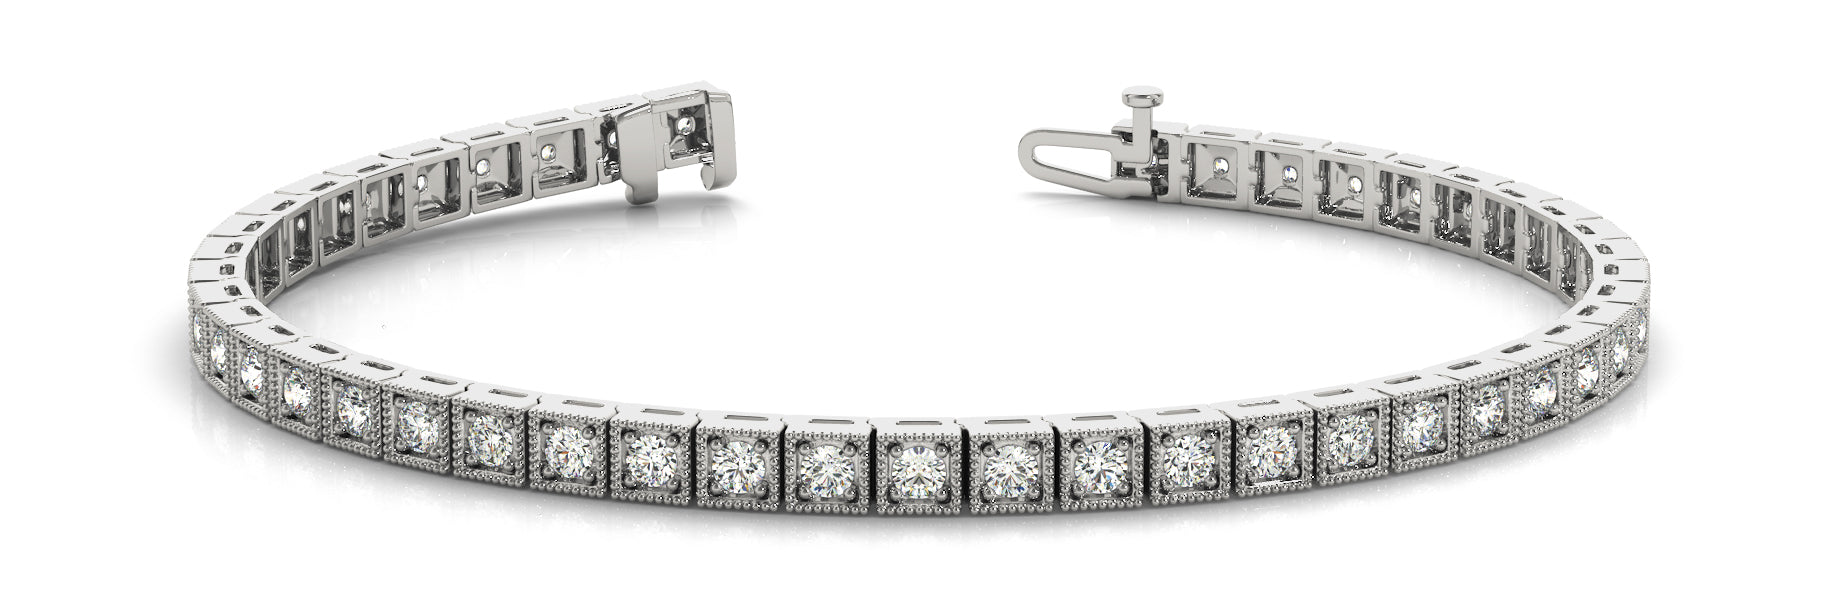 Line Diamond Bracelet 1.06ct tw Ladies - 14kt White Gold